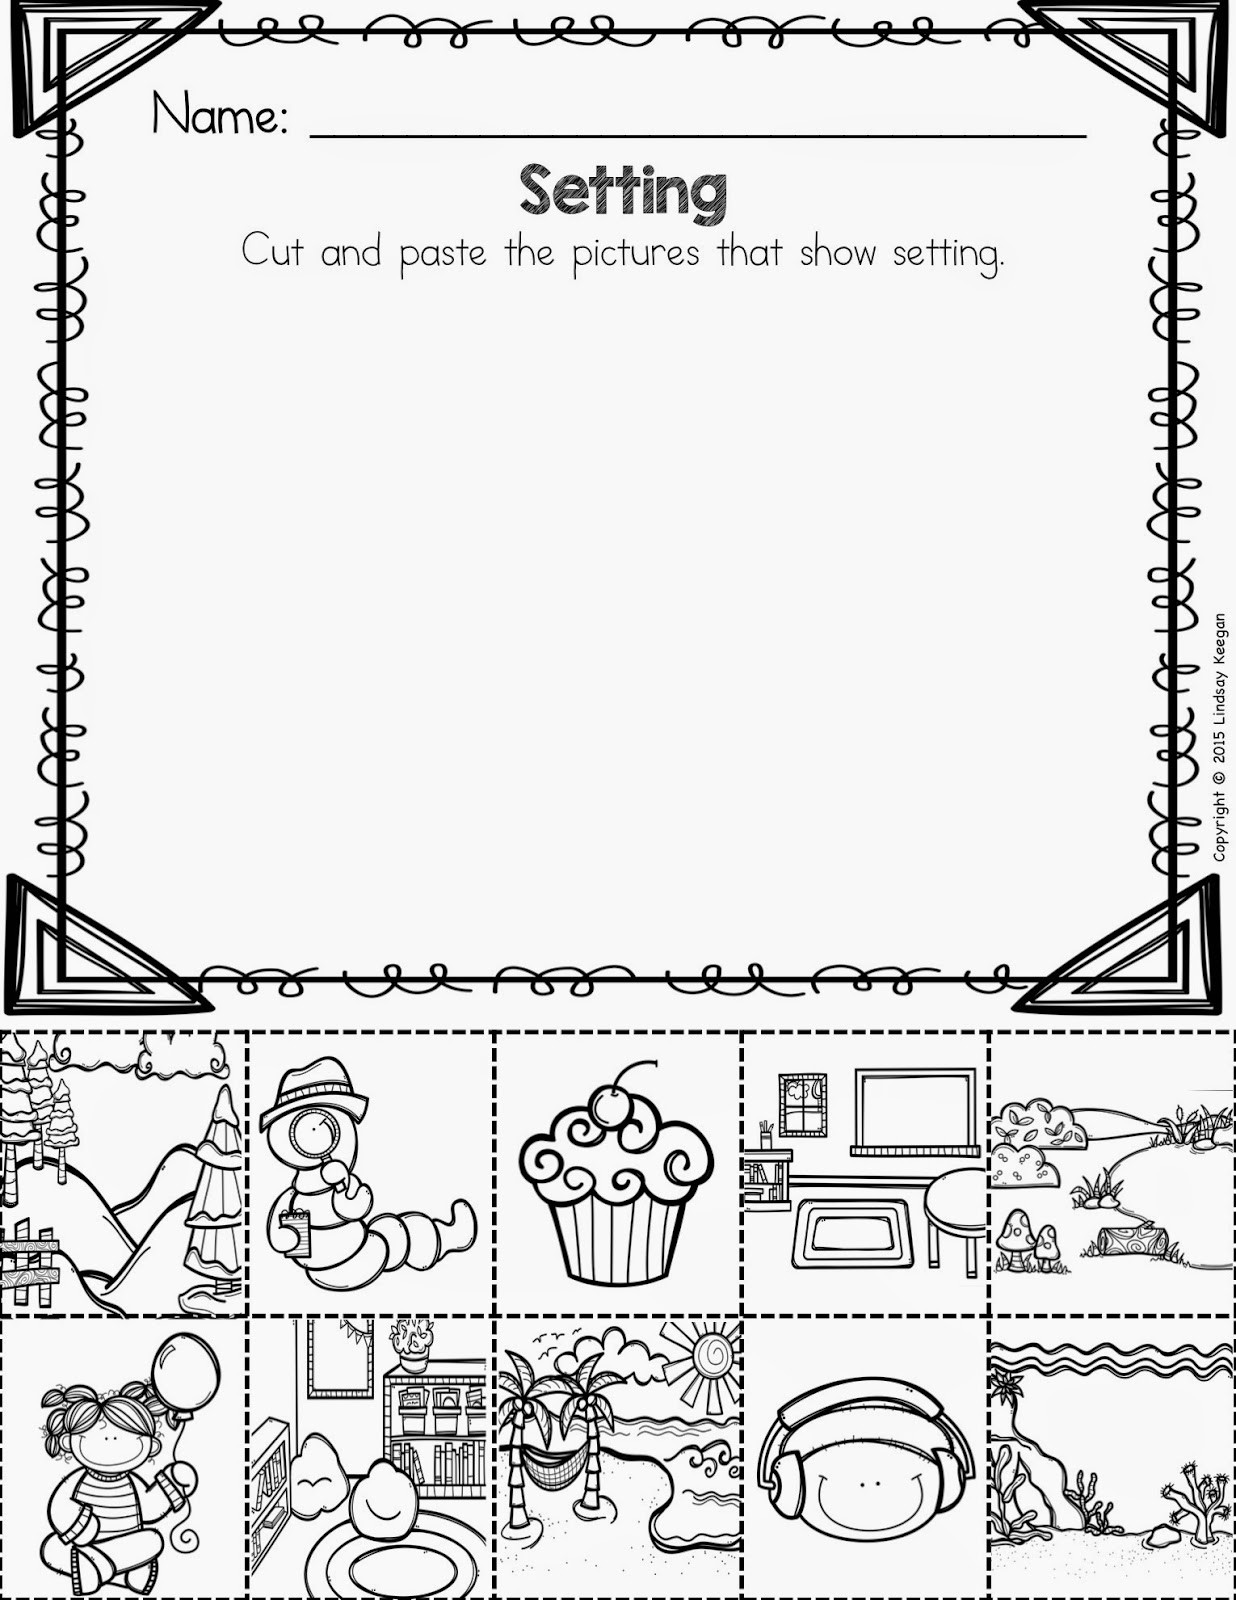 Sequence Worksheets 5th Grade Ks3 Mental Math Worksheets Opposites Preschool Worksheets